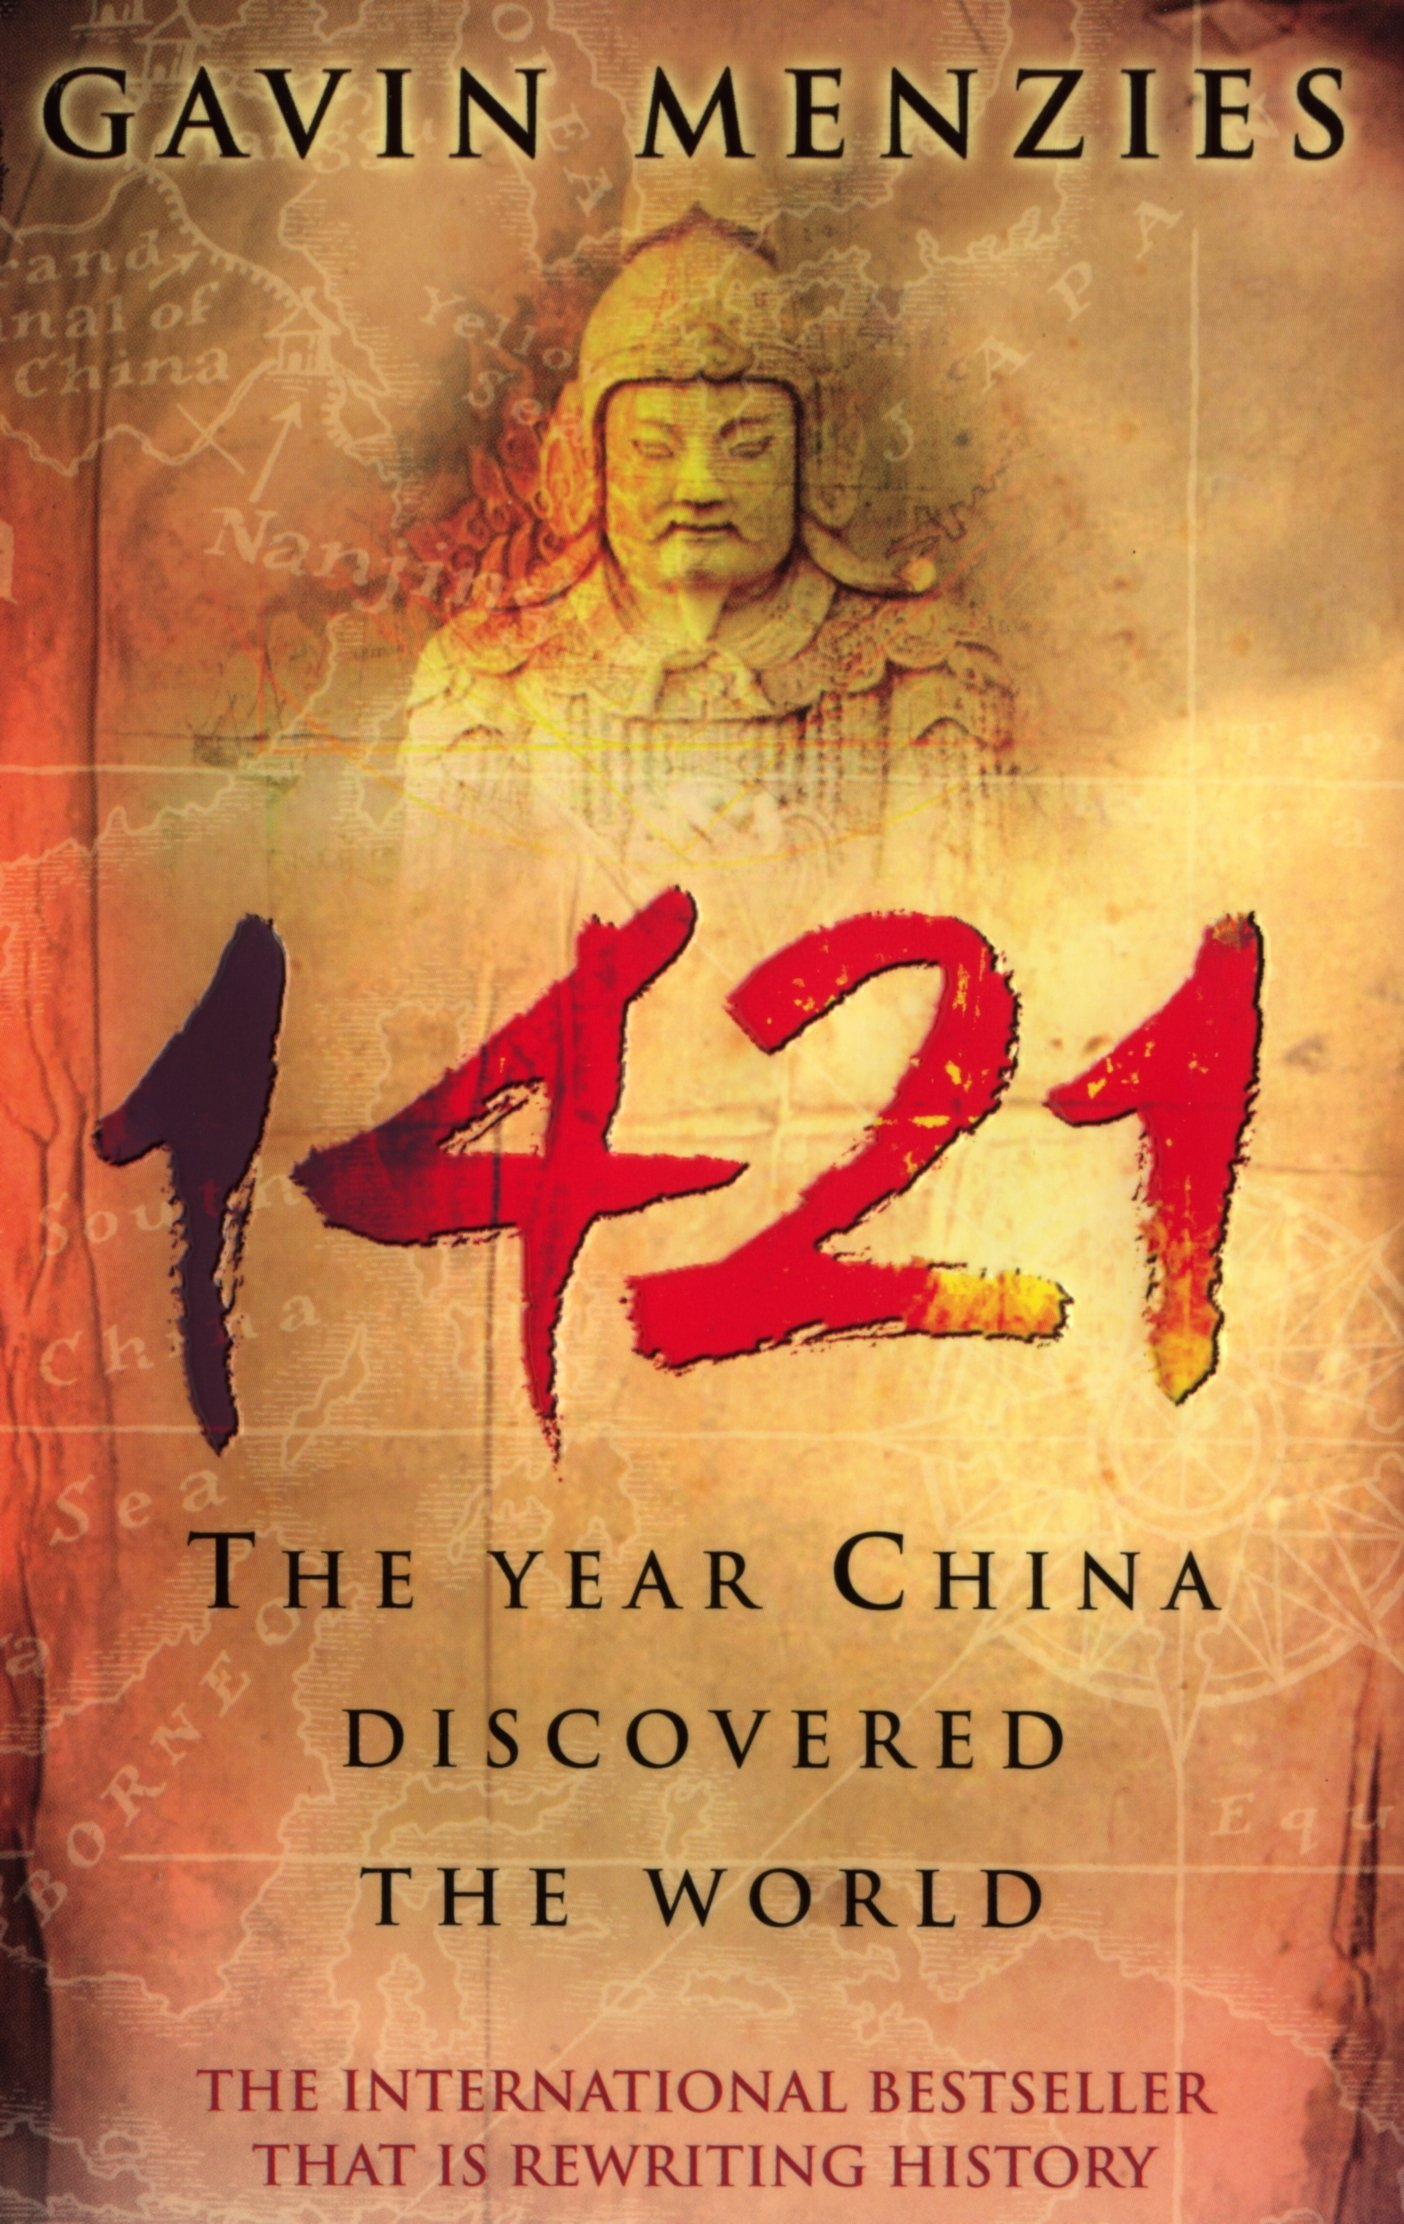 Evaluating the Validity of Information - Did the Chinese Discover America in 1421?